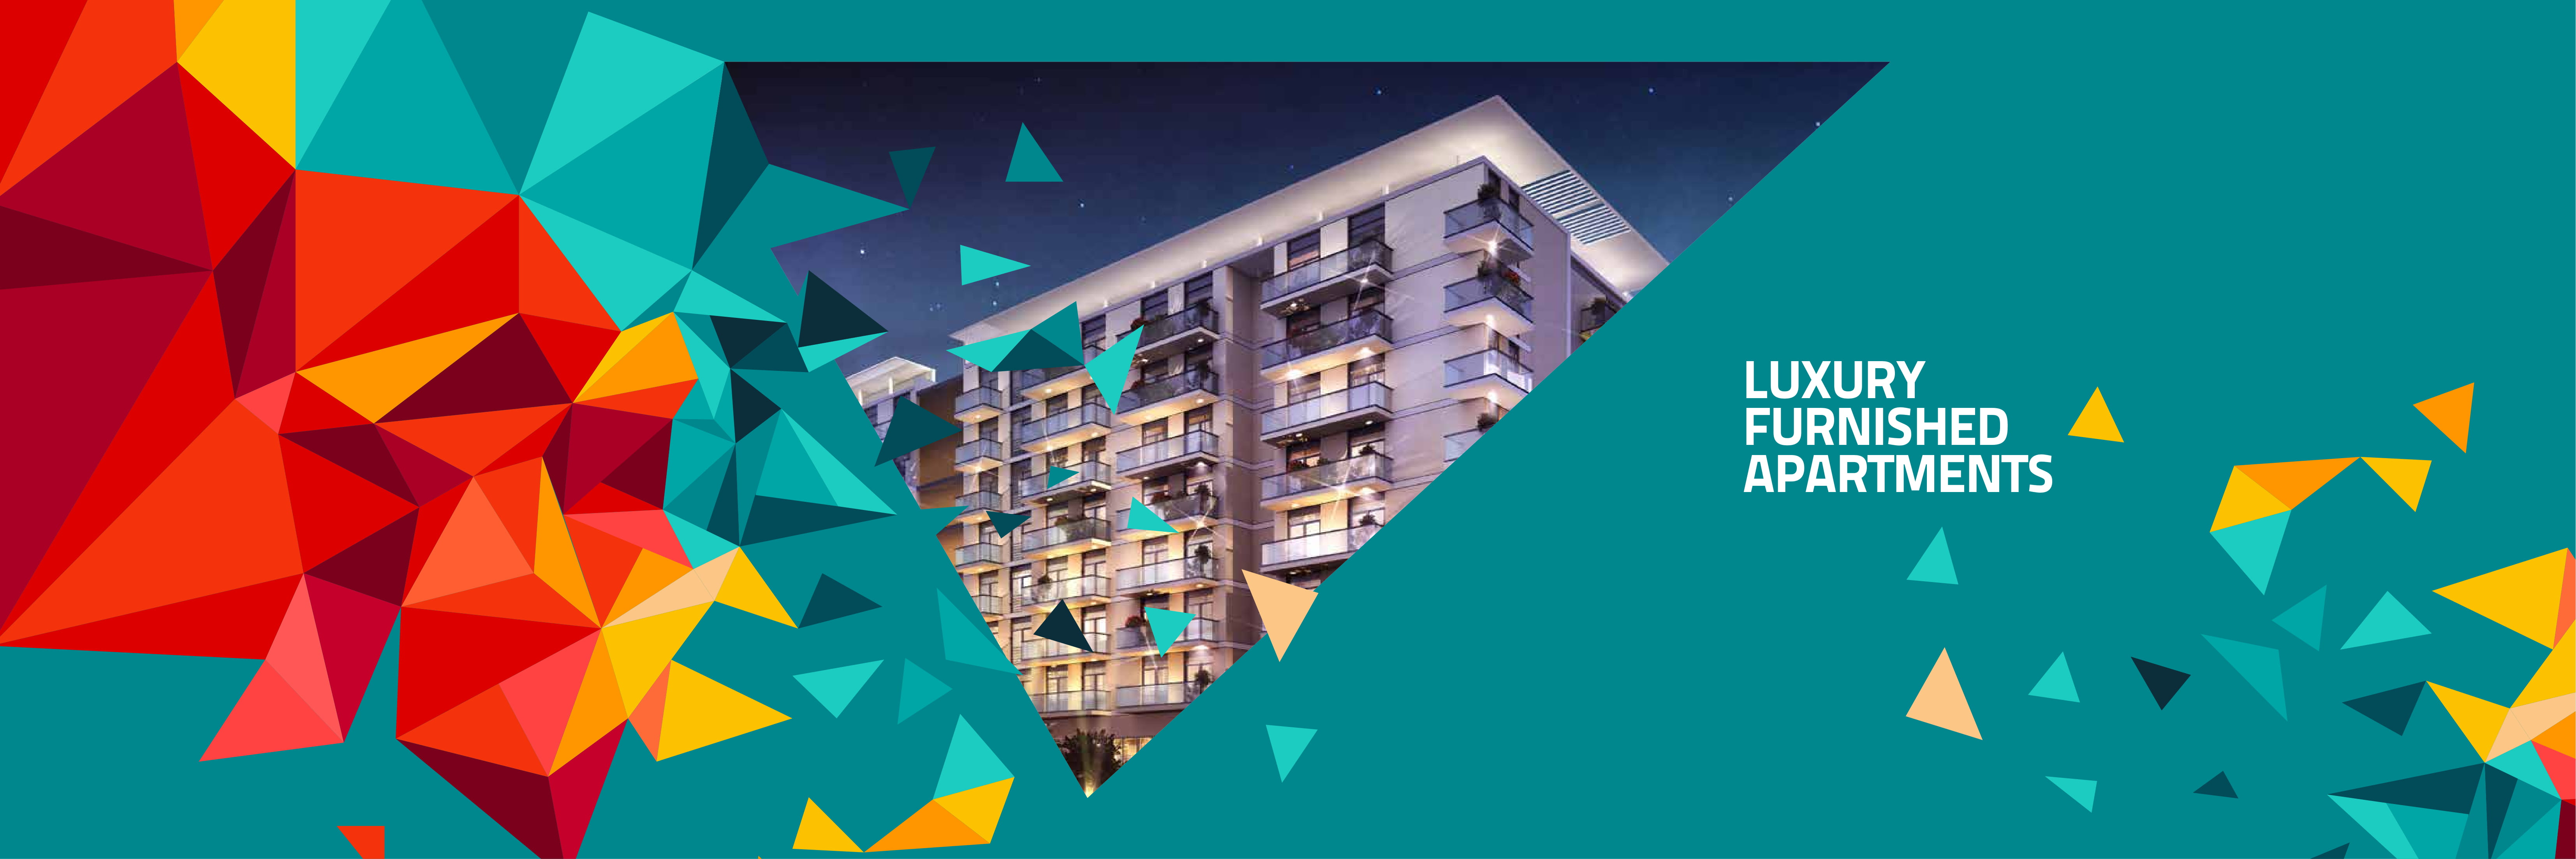 #Unbelievable offer never been seen before: Over 50% off on the 1BR & 2BR Units in #Celestia - #Dubai South Price Starting from AED.549,999/- Just grab the opportunity call us now #Flash #sale only on 2nd #March2019 #DAMAC PROPERTIES # CALL # +919958959555 DUBAI PROPERTIES CALL +919958959555 https://www.dubaiproperties.co.in/